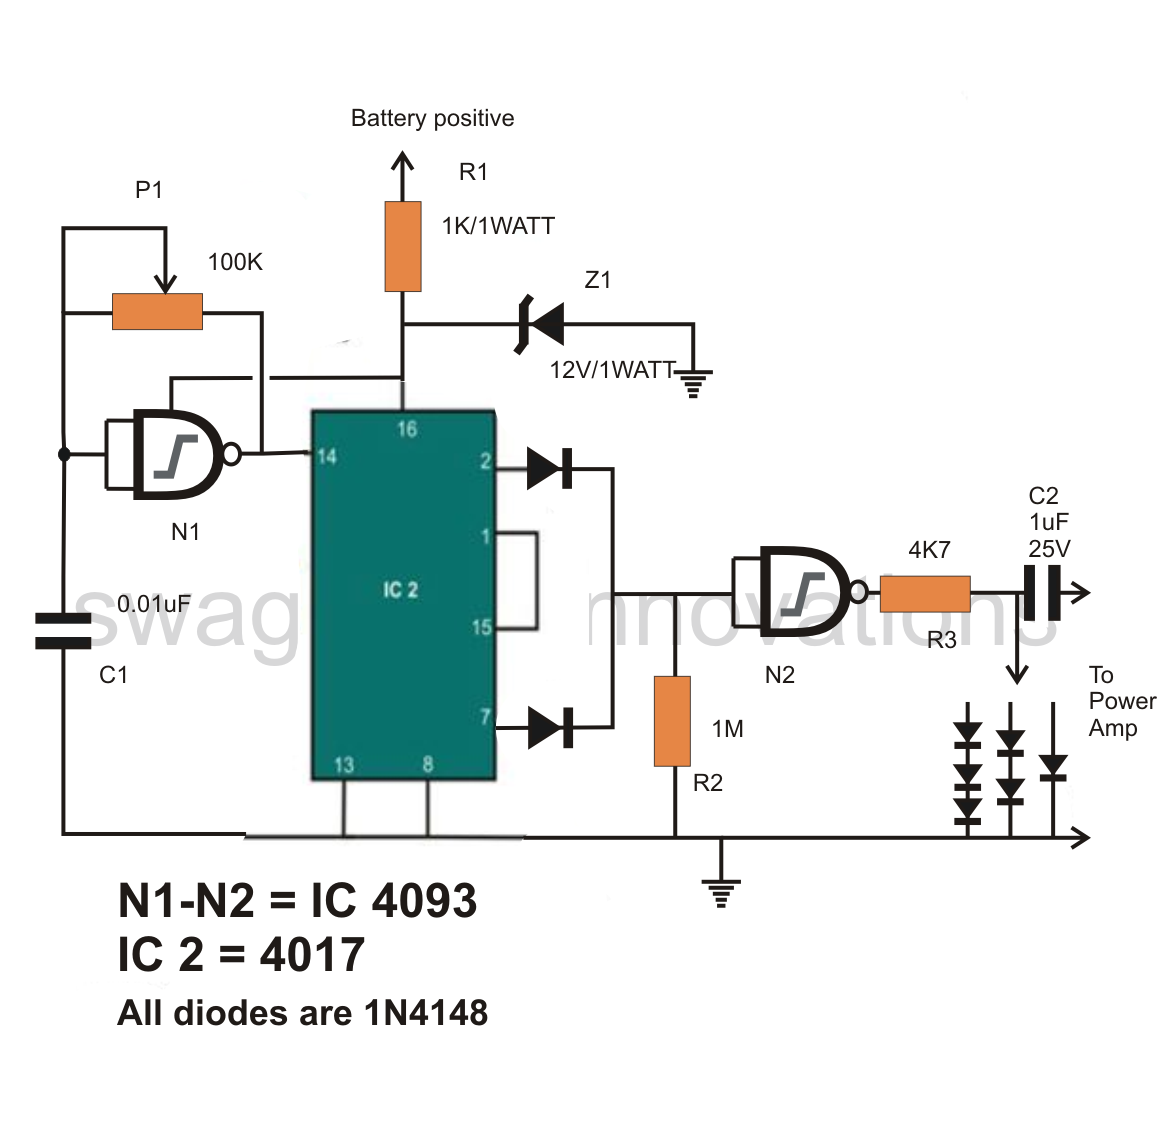 Dc to ac converter circuit diagram pdf periodic diagrams science dc to ac converter circuits satellite types ccuart Image collections